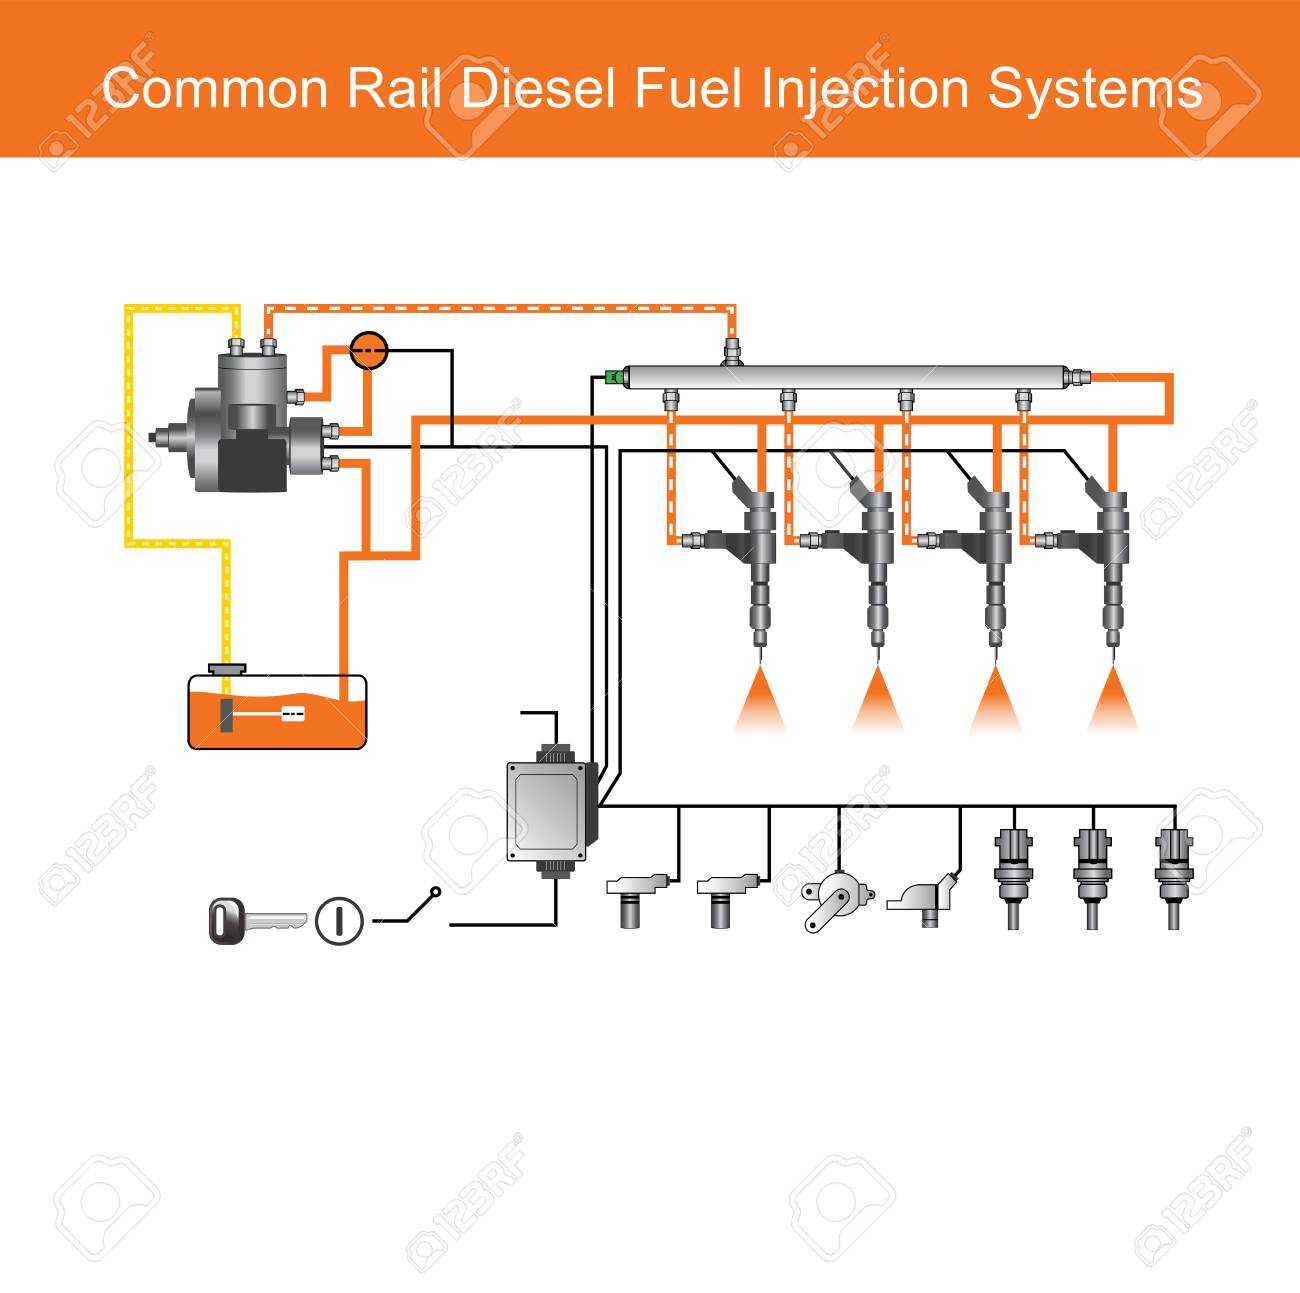 hight resolution of pics photos petrol fuel injection system diagram wiring diagram rules fuel injection system diagram petrol fuel injection system diagram